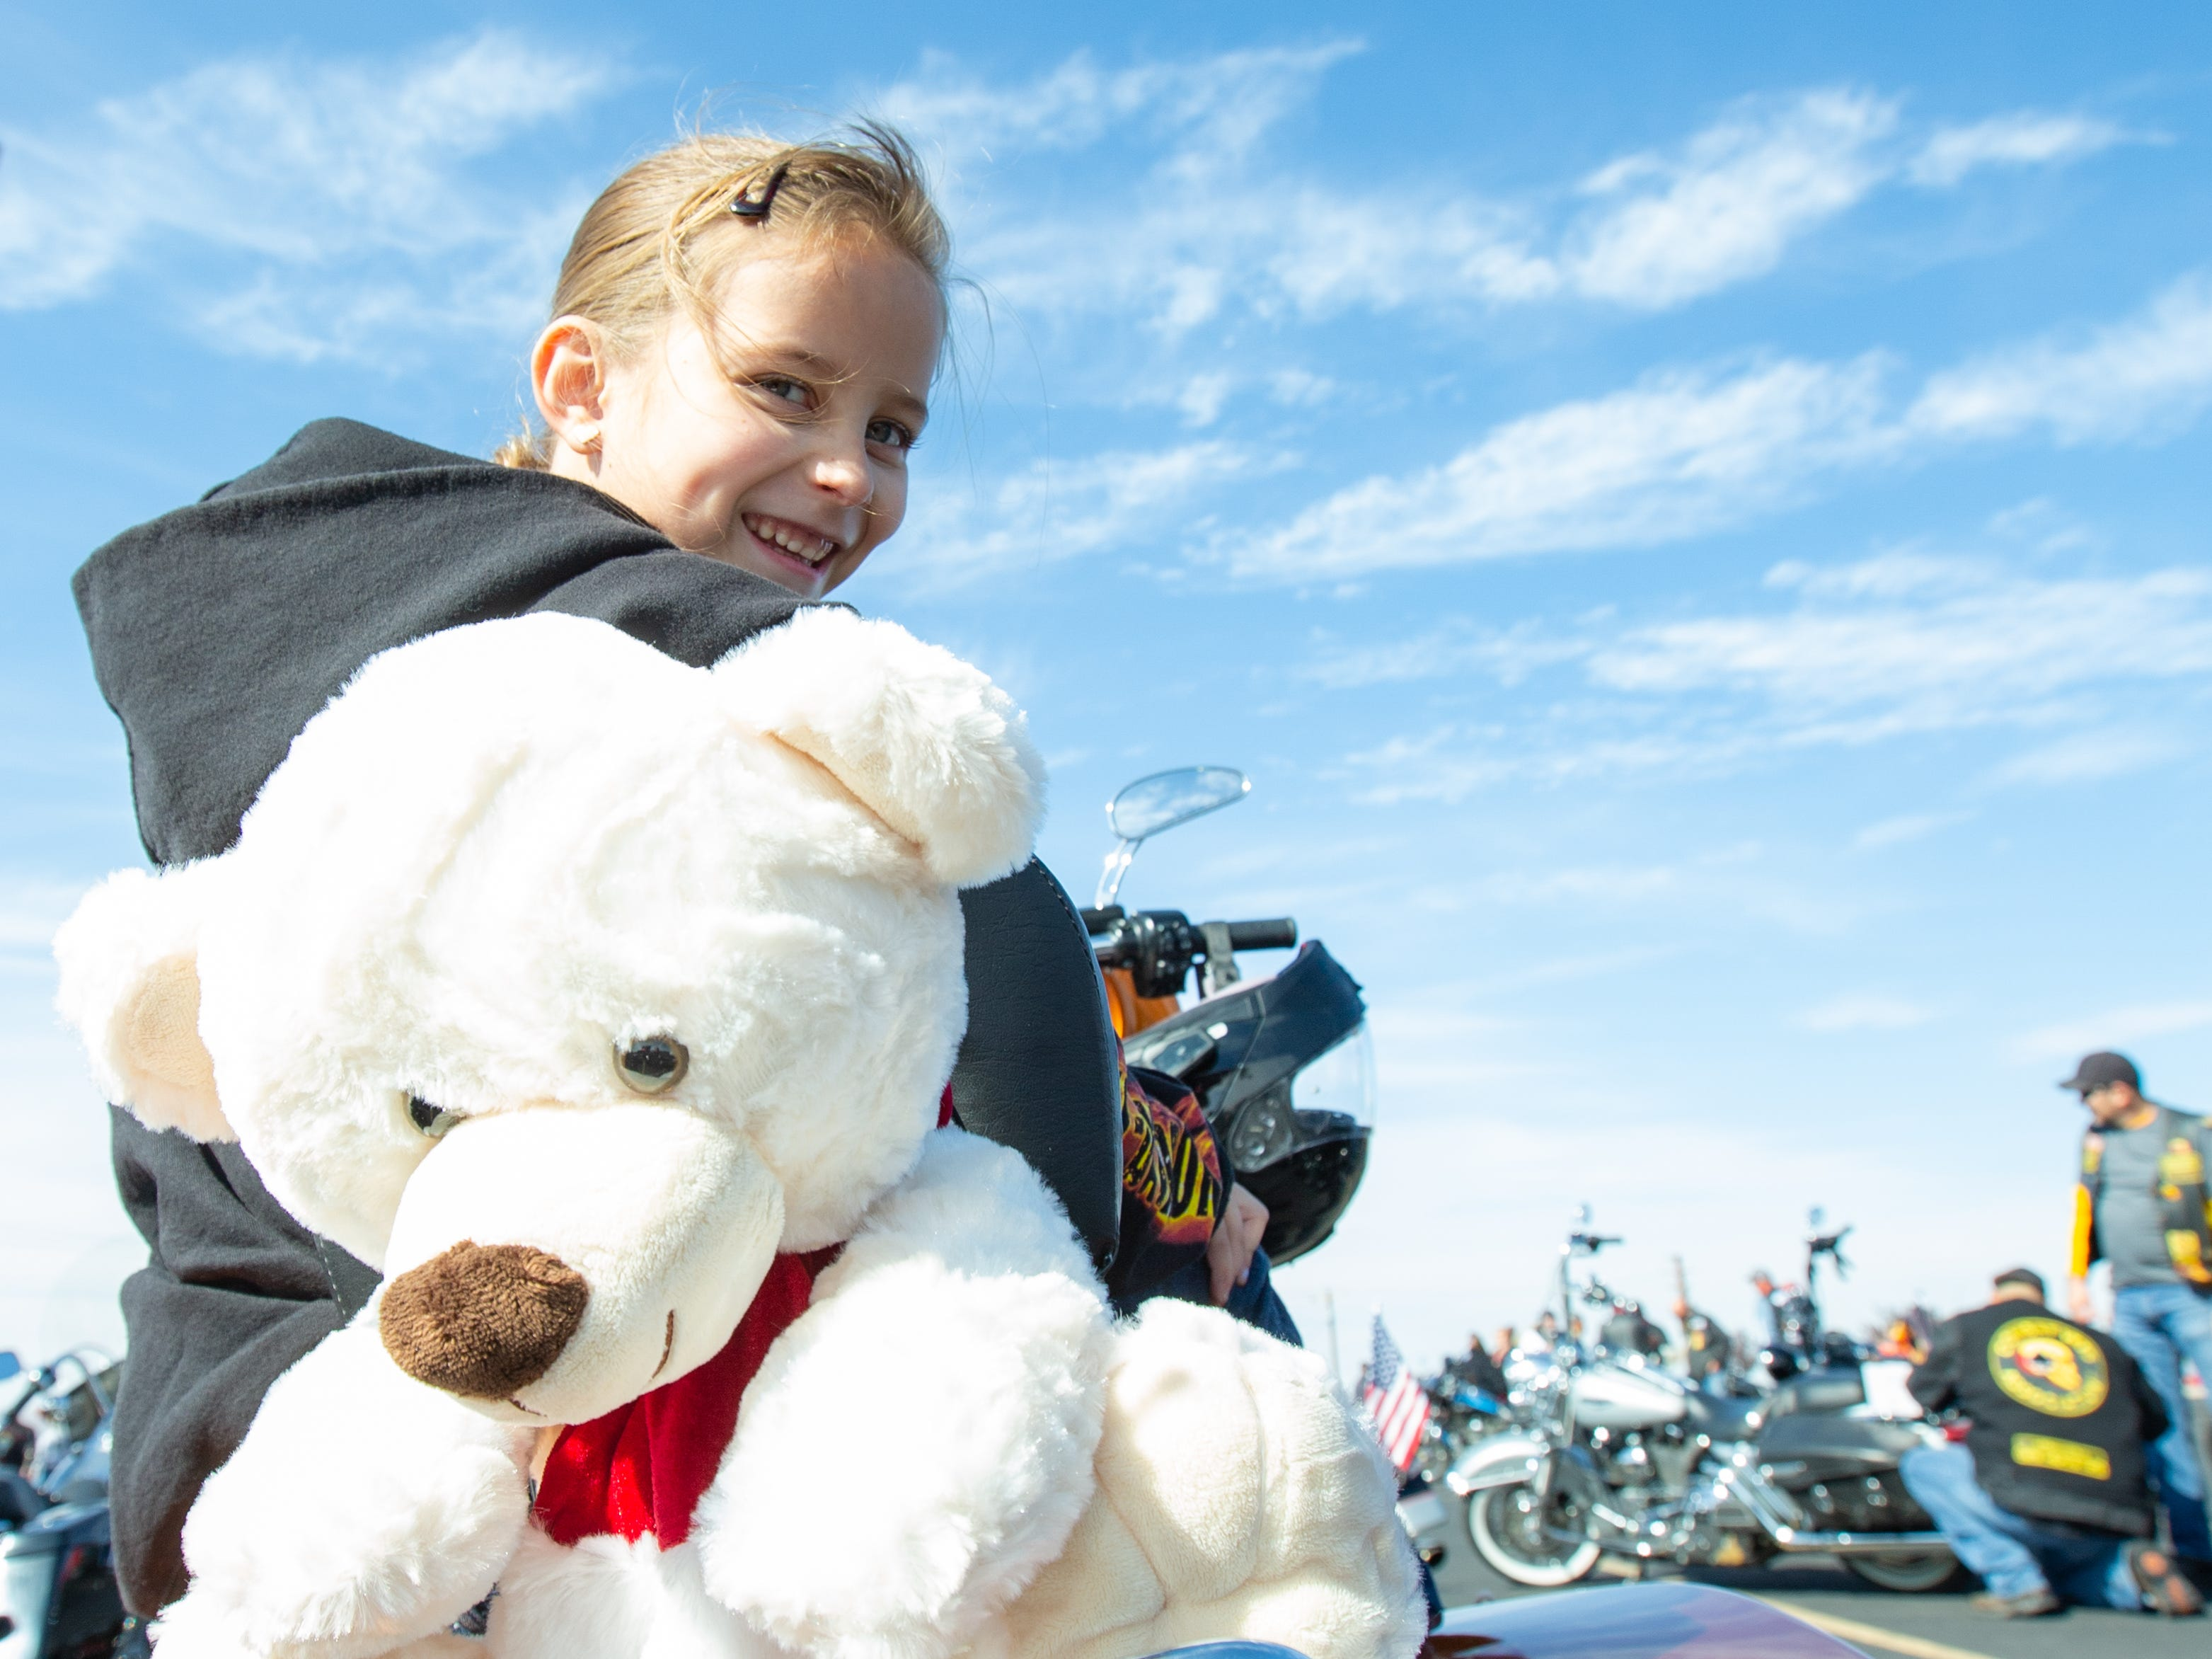 Aubrie Lucero, of Fredericksburg, Texas, hangs out on her father's bike with a stuffed animal  as they participate in the 38th annual Toys for Kids Motorcycle Parade to benefit children in southern New Mexico.